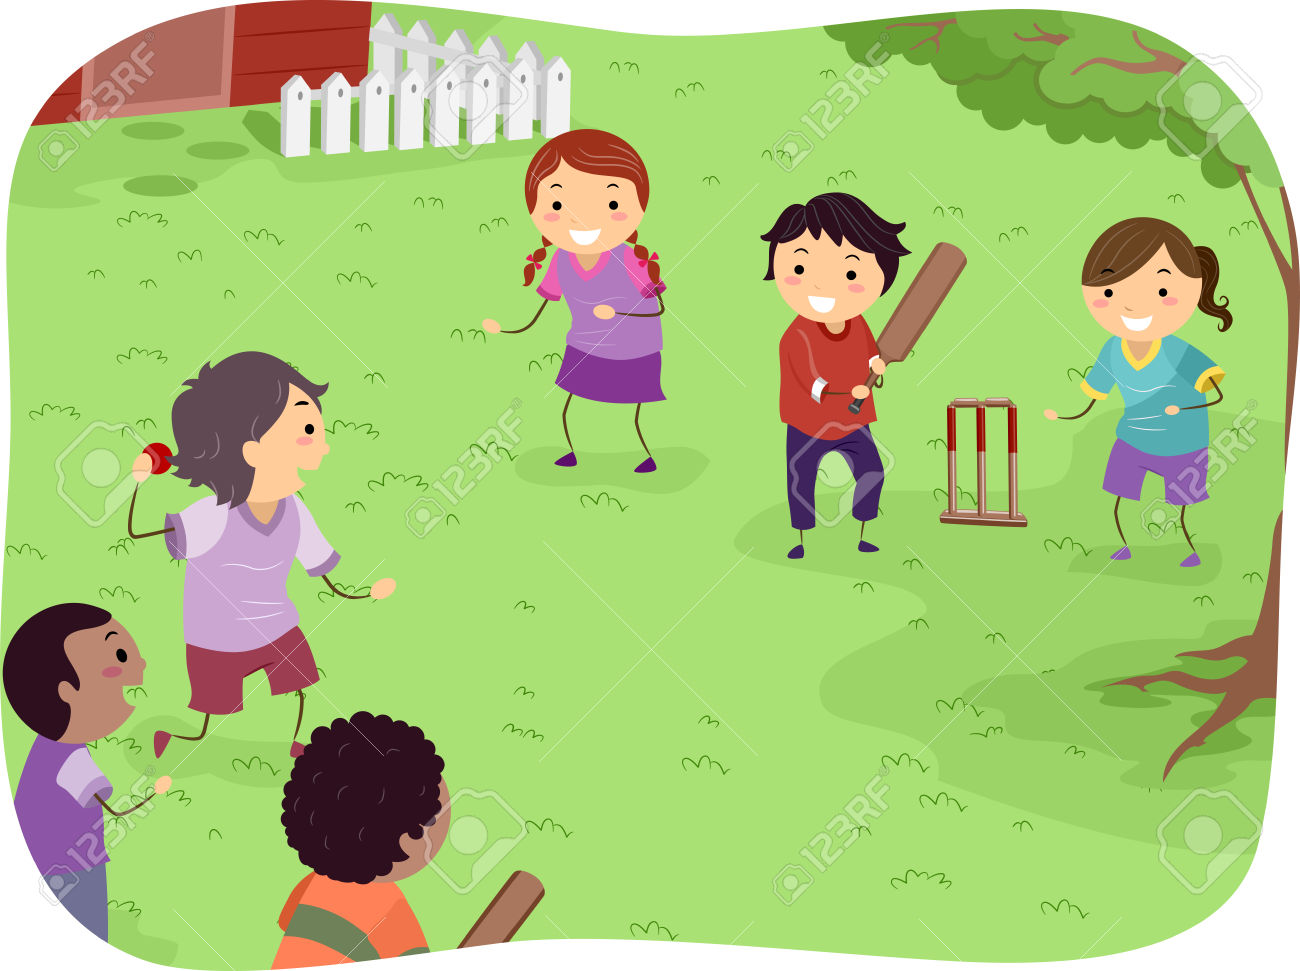 Cricket match clipart #4